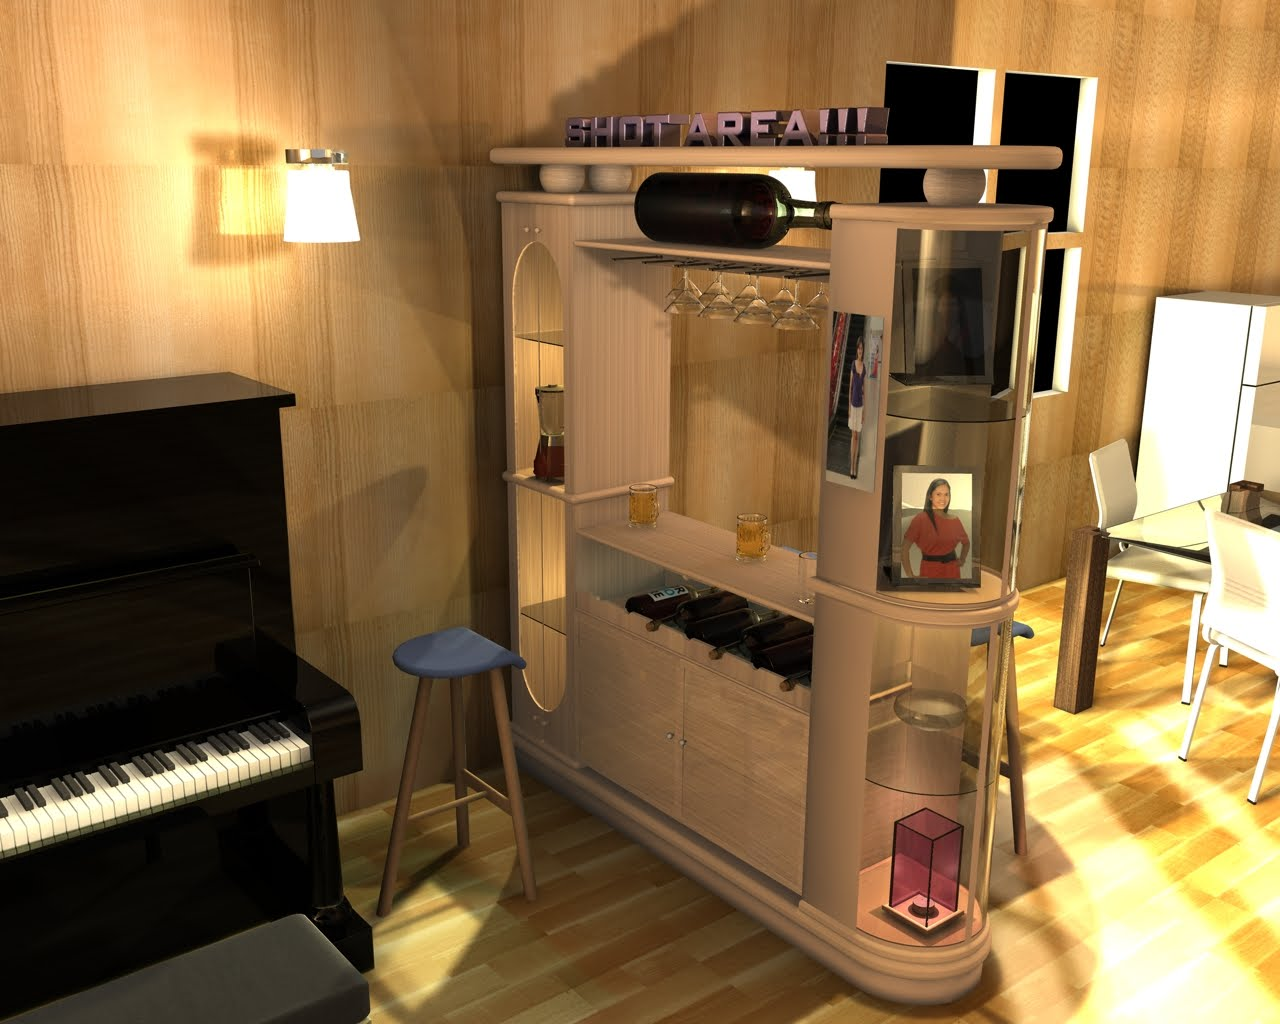 Creative arts mini bar design concept